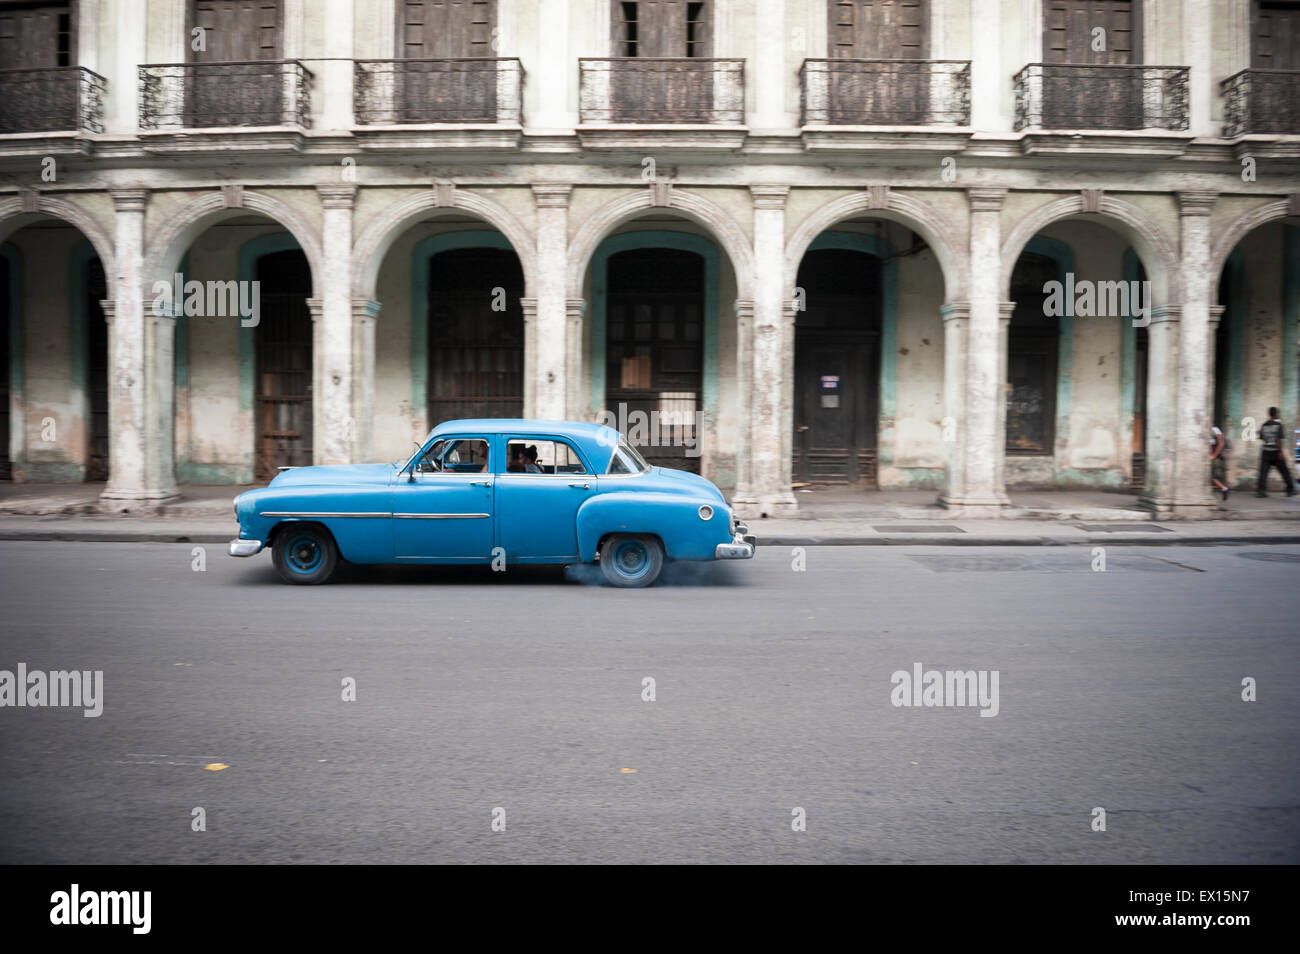 HAVANA, CUBA - JUNE, 2011: Old American car drives in front of the traditional architecture of a colonial arcade. - Stock Image